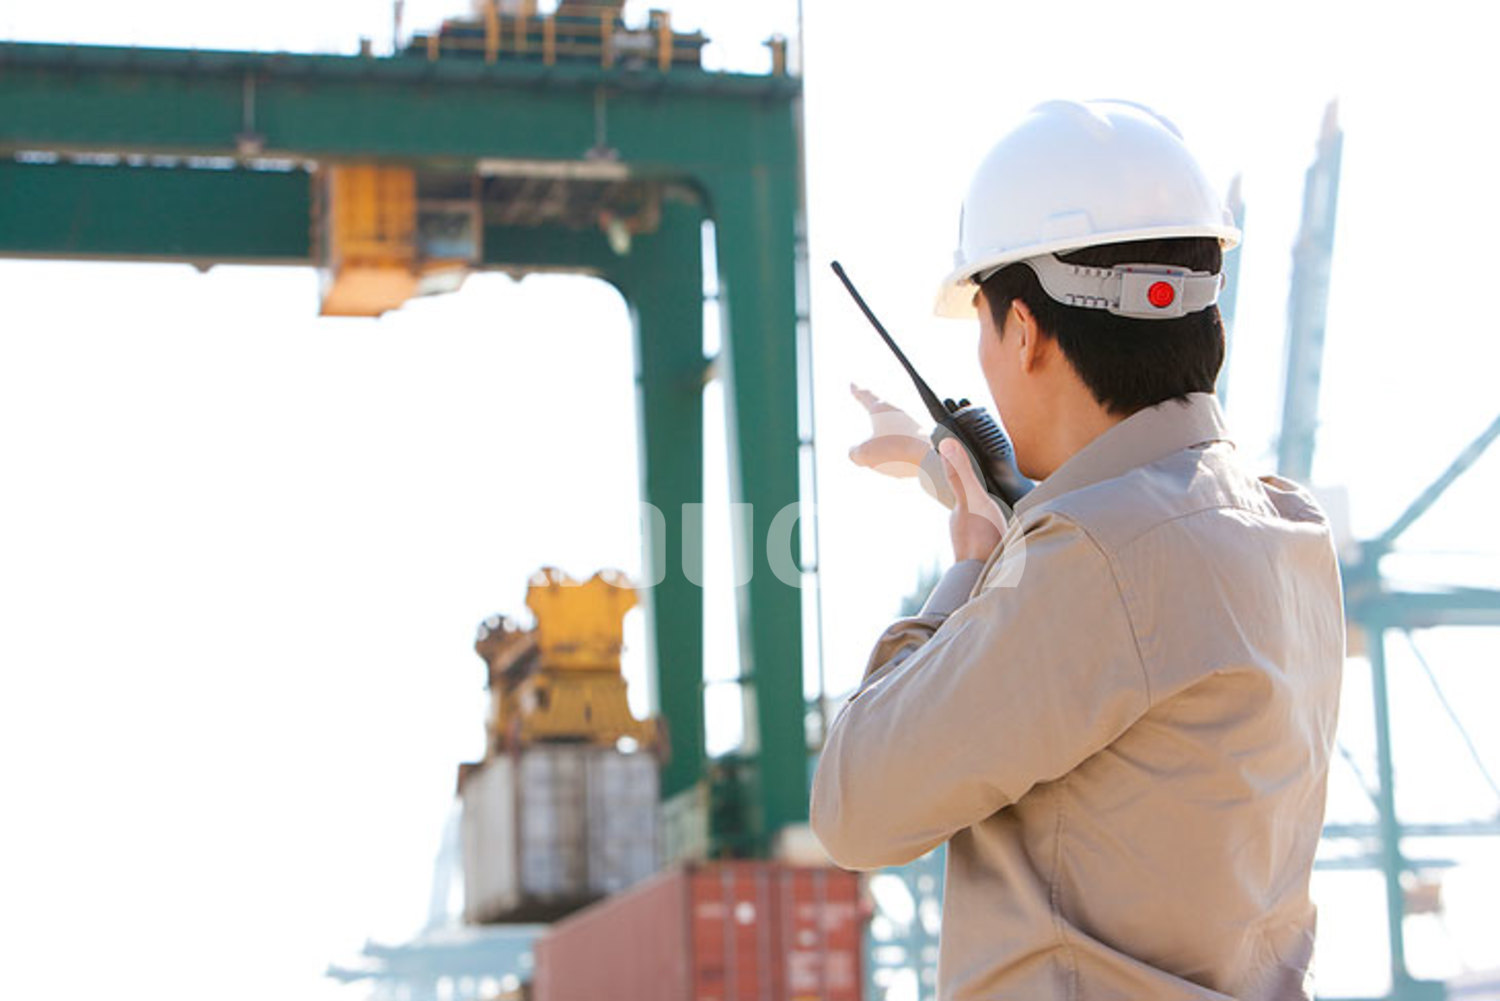 Chinese shipping industry worker directing cranes with his walkie-talkie